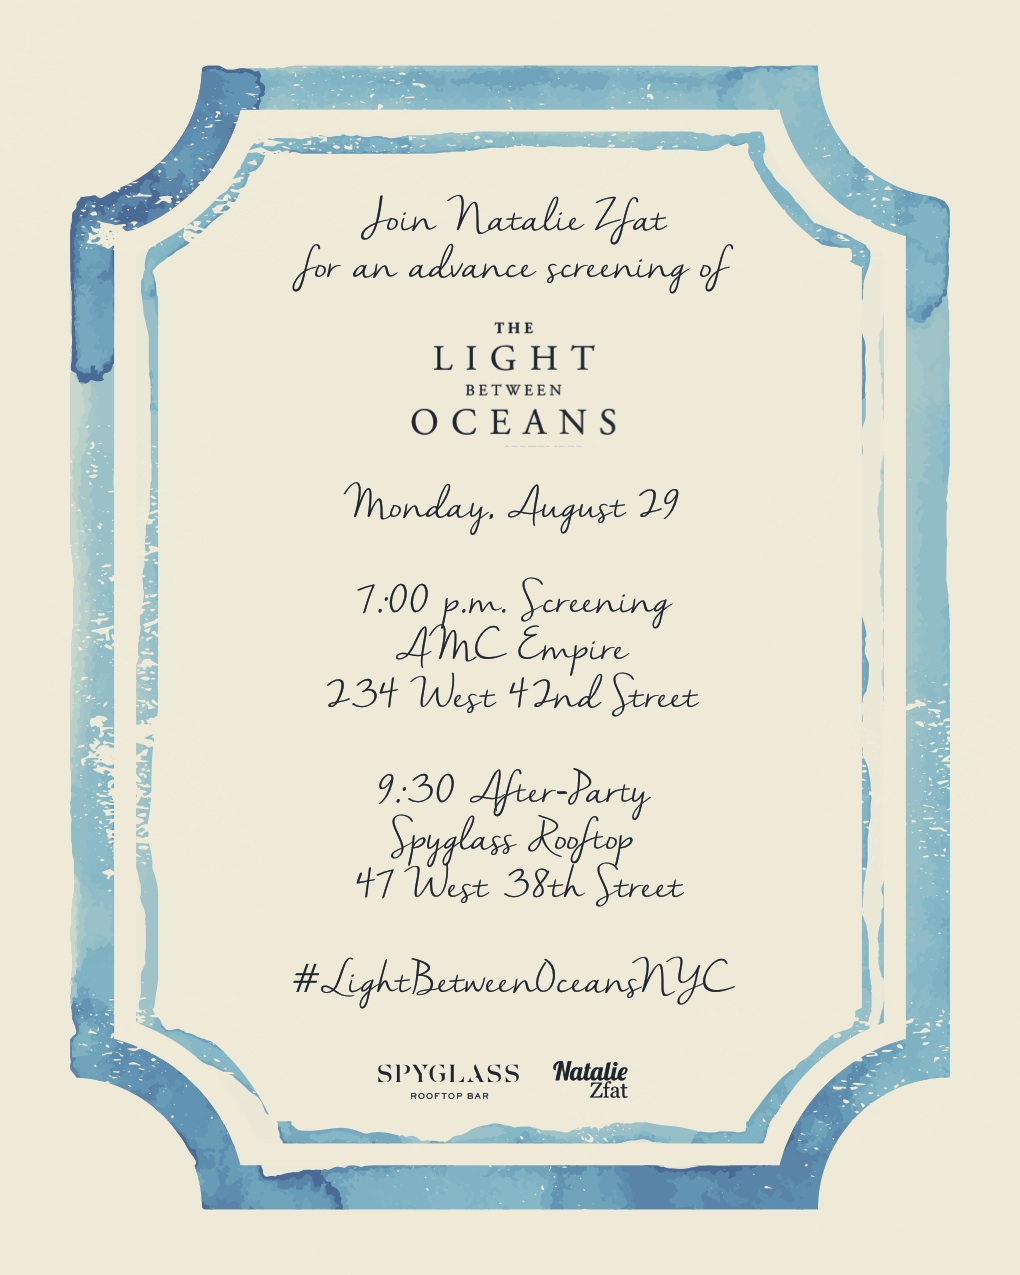 Light Between Oceans Invite.jpg